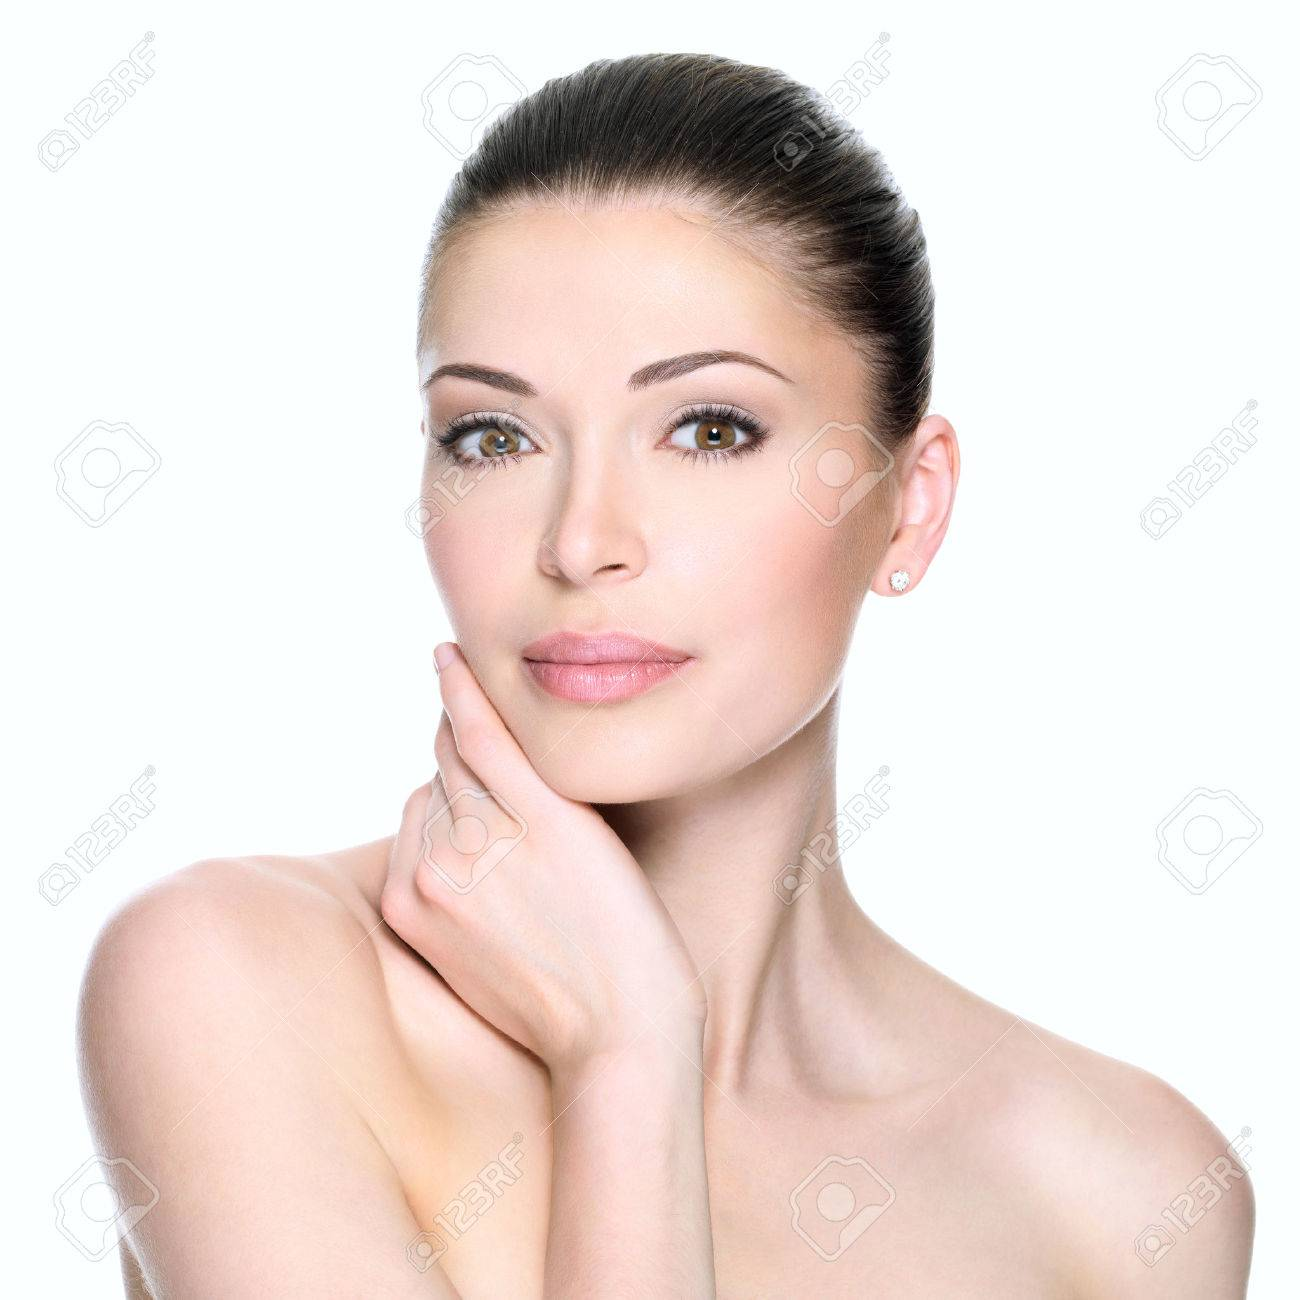 Adult woman with beautiful face - isolated on white. Skin care concept. Banque d'images - 53558934